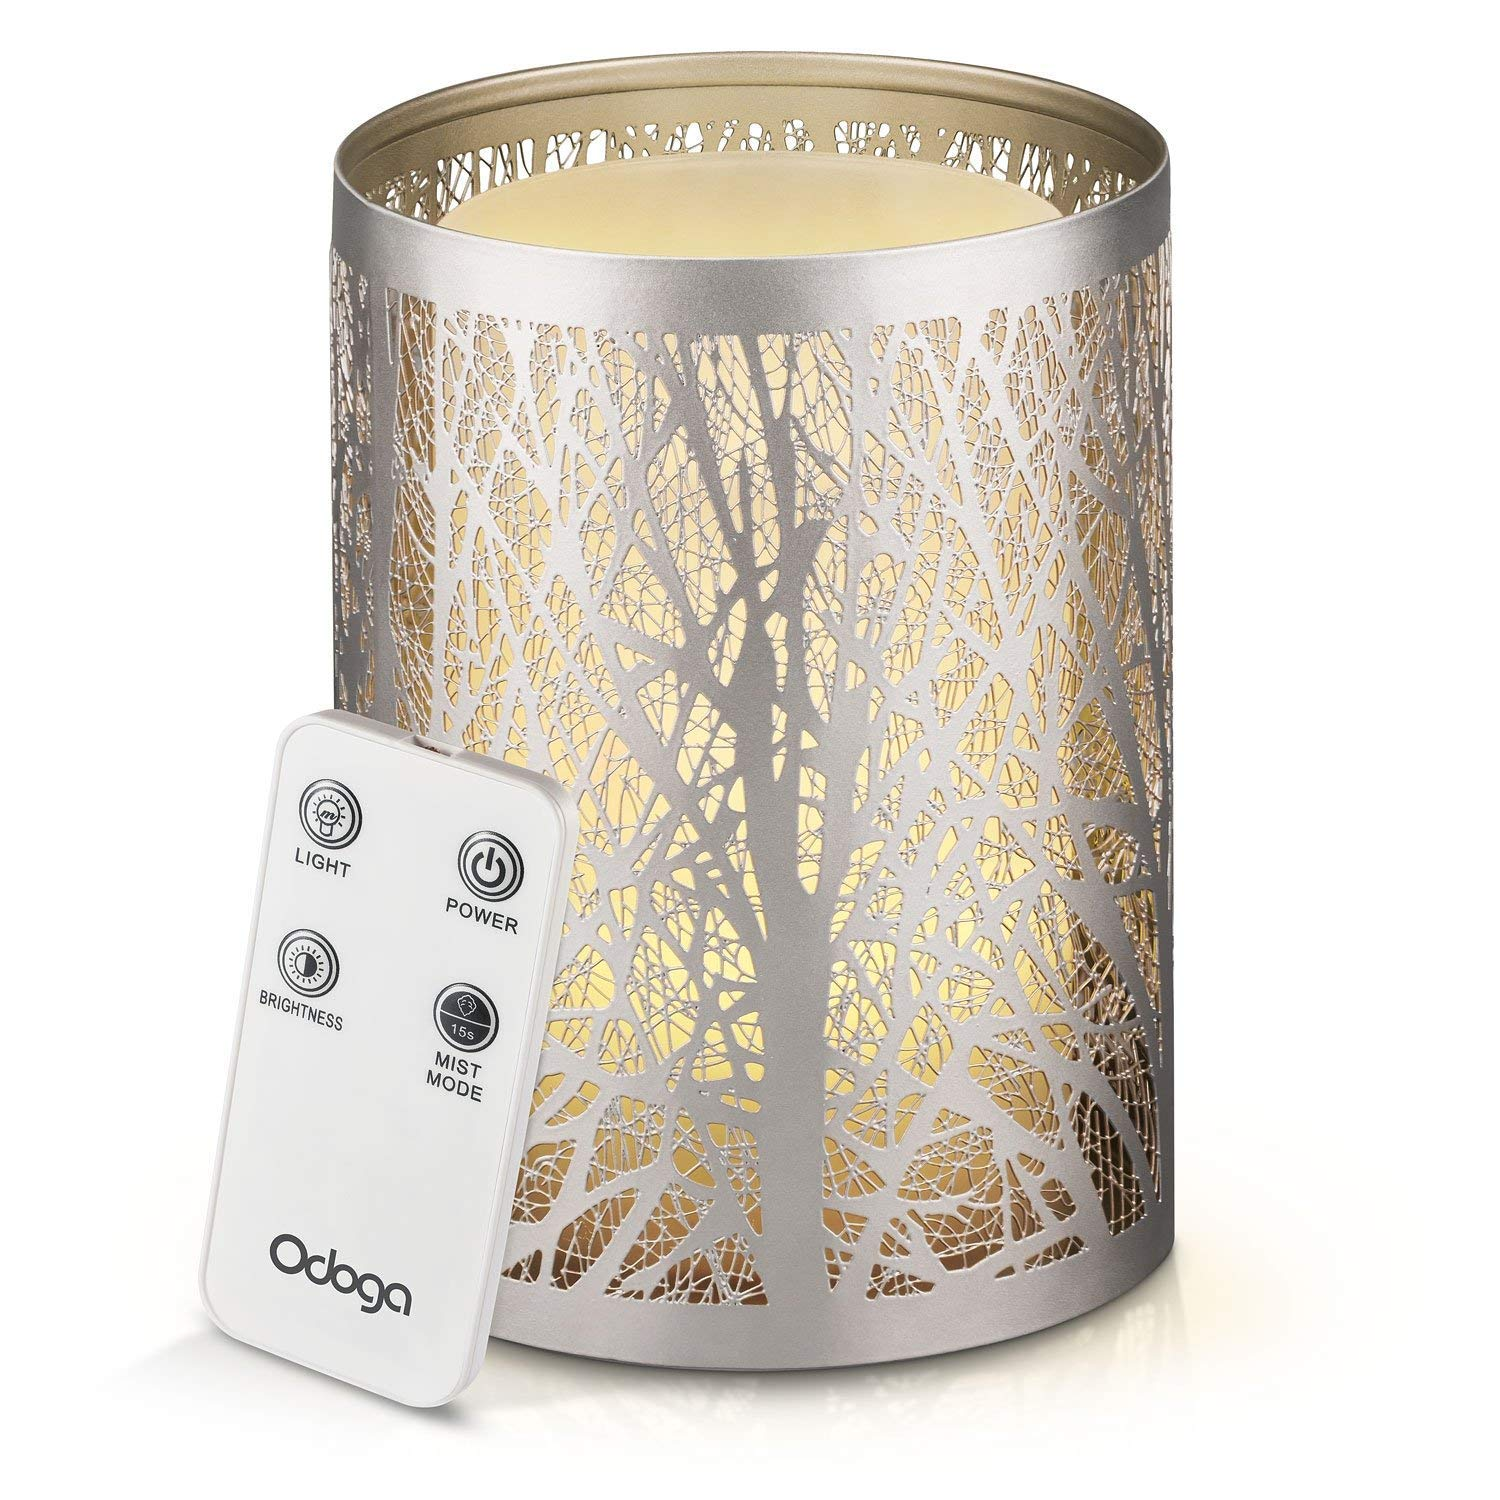 Odoga Aromatherapy Essential Oil Diffuser, 100 ml Ultrasonic Whisper Quiet Cool Mist Humidifier with Warm White Color Candle Light Effect, Decorative Silver Iron Cover & Remote Control Oak